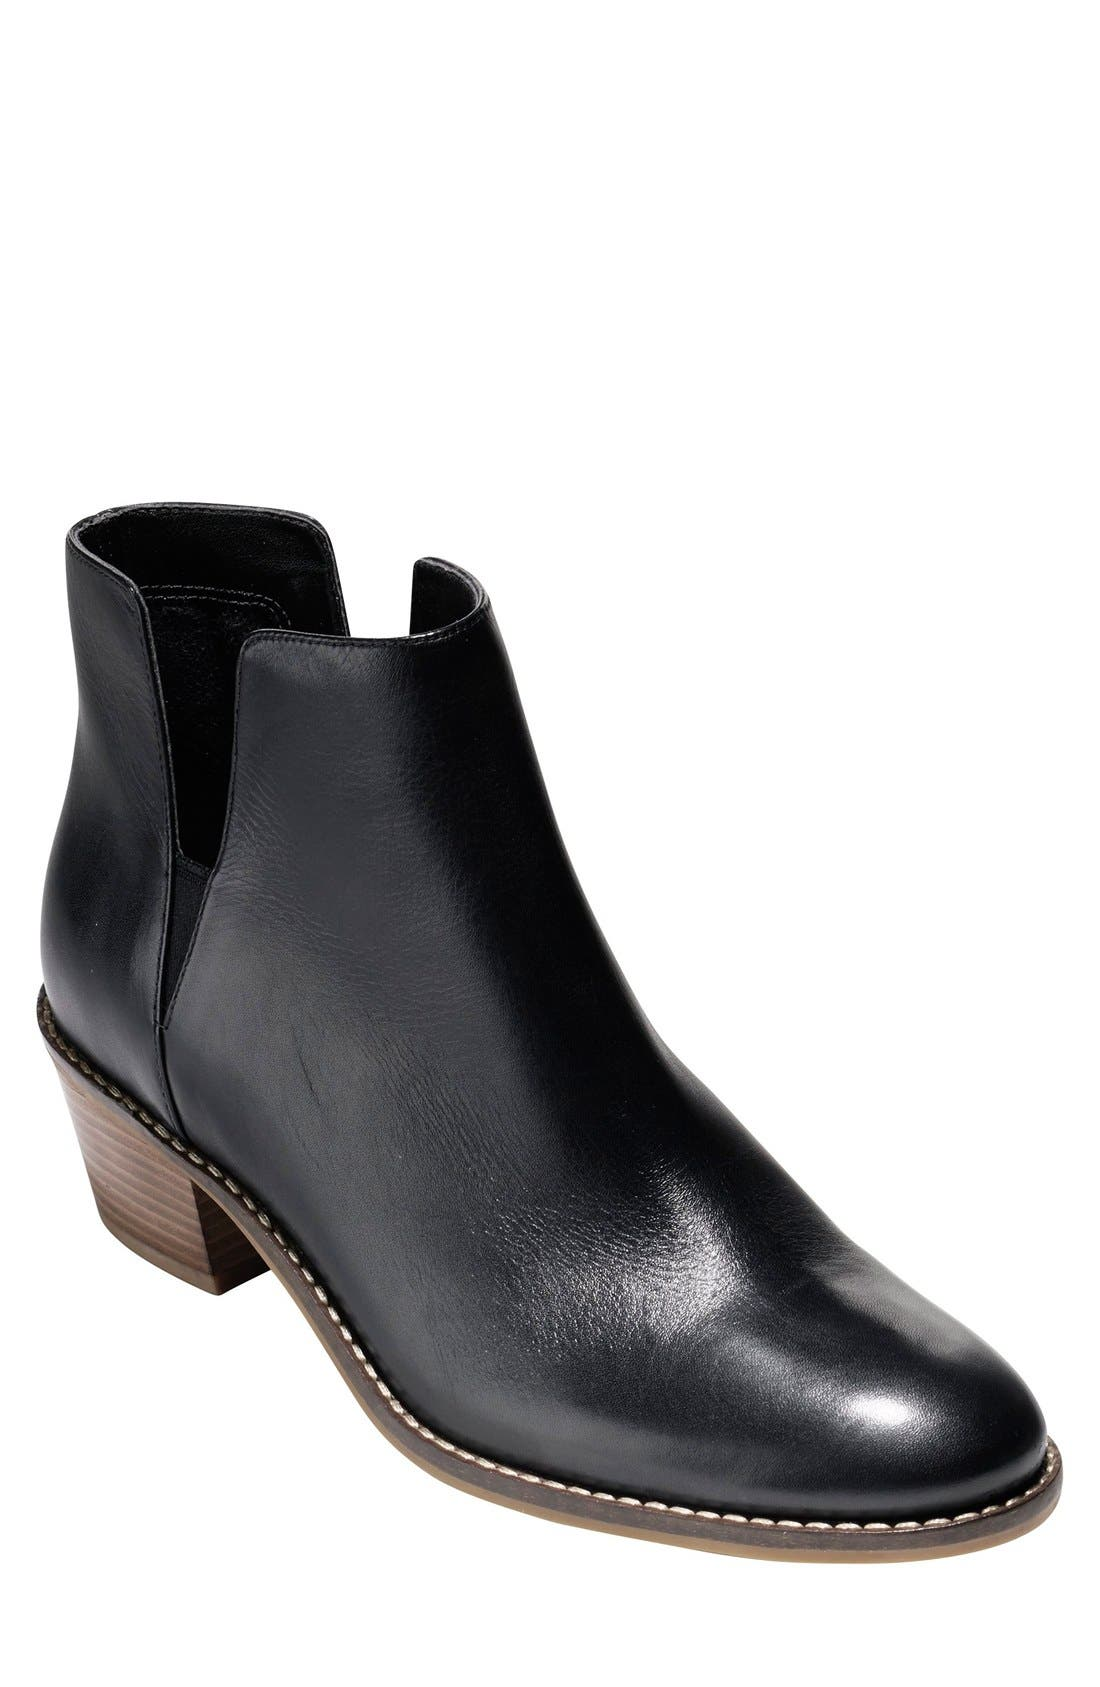 Alternate Image 1 Selected - Cole Haan 'Abbot' Chelsea Boot (Women)